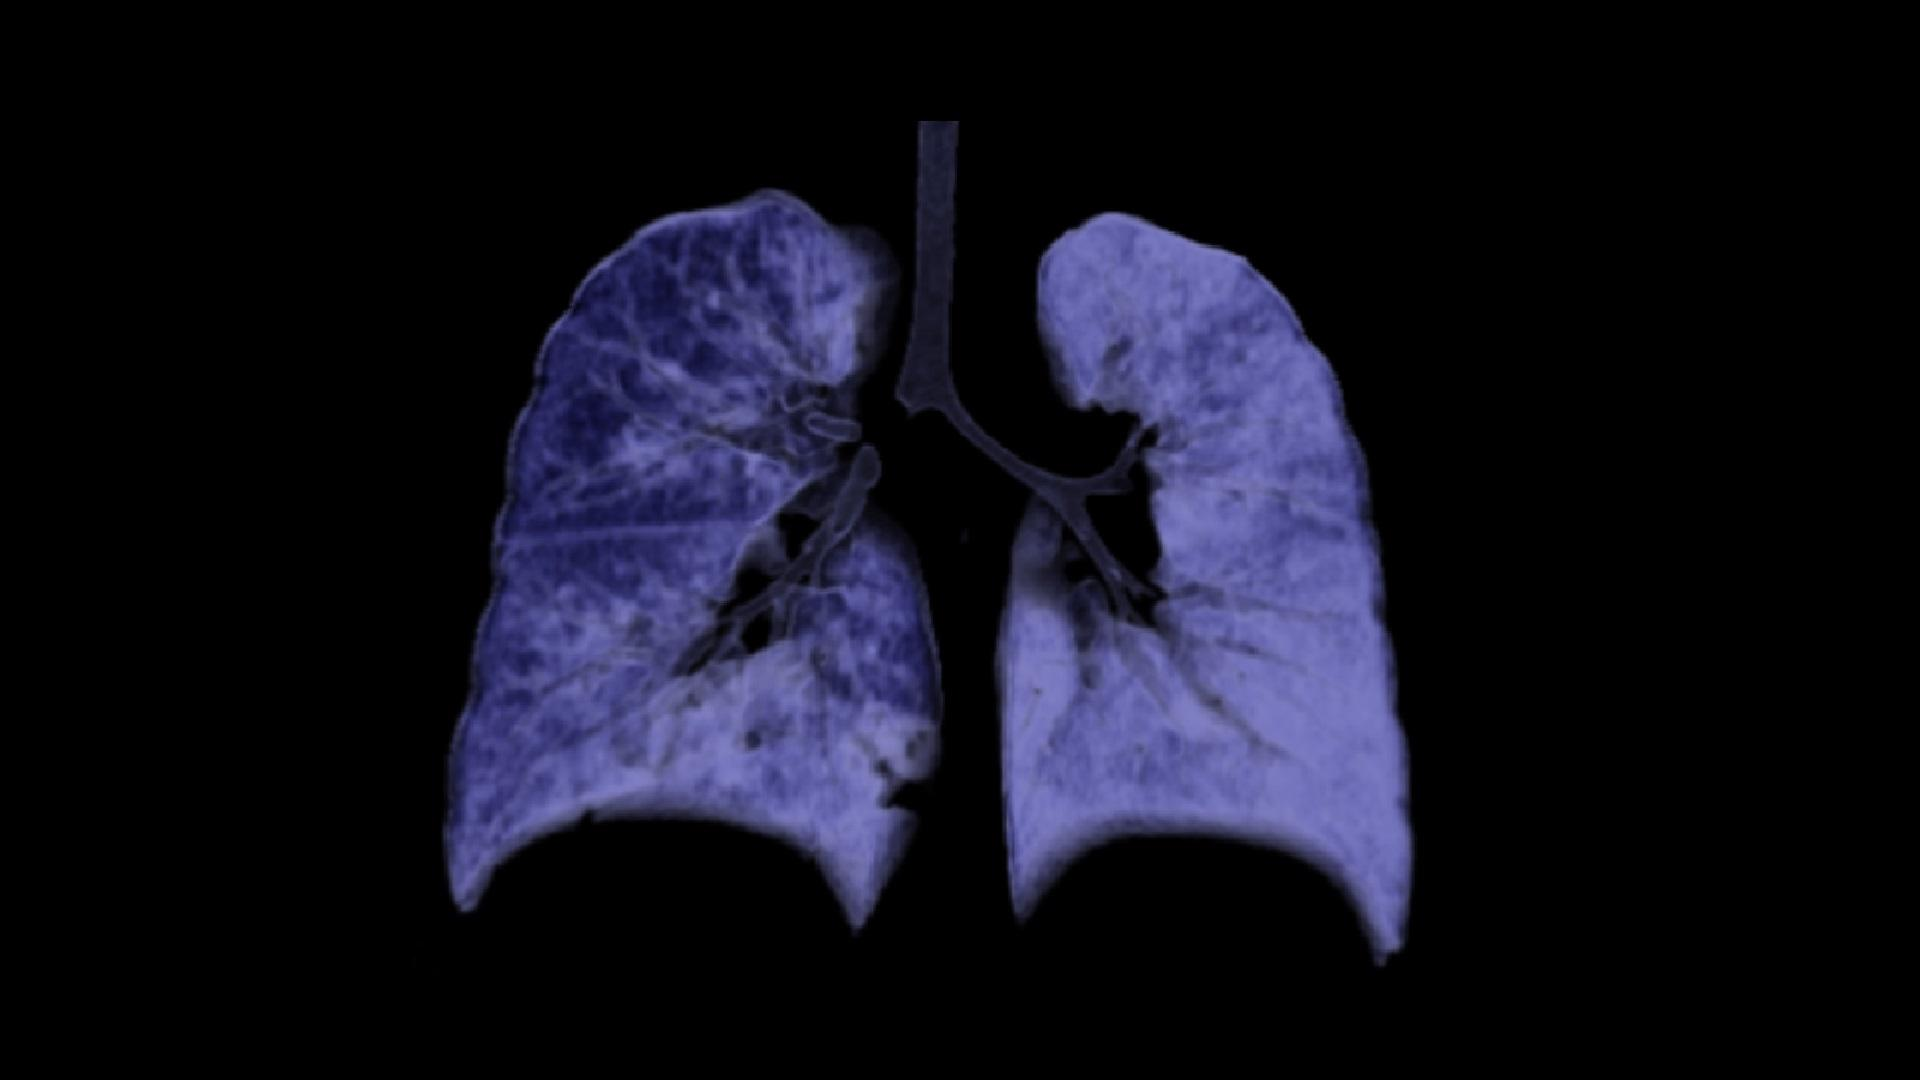 A VRT image shows a blocked right main bronchus. The right lung appears hyperlucent in comparison to the left one, suggesting hyperinflation due to the valve effect.